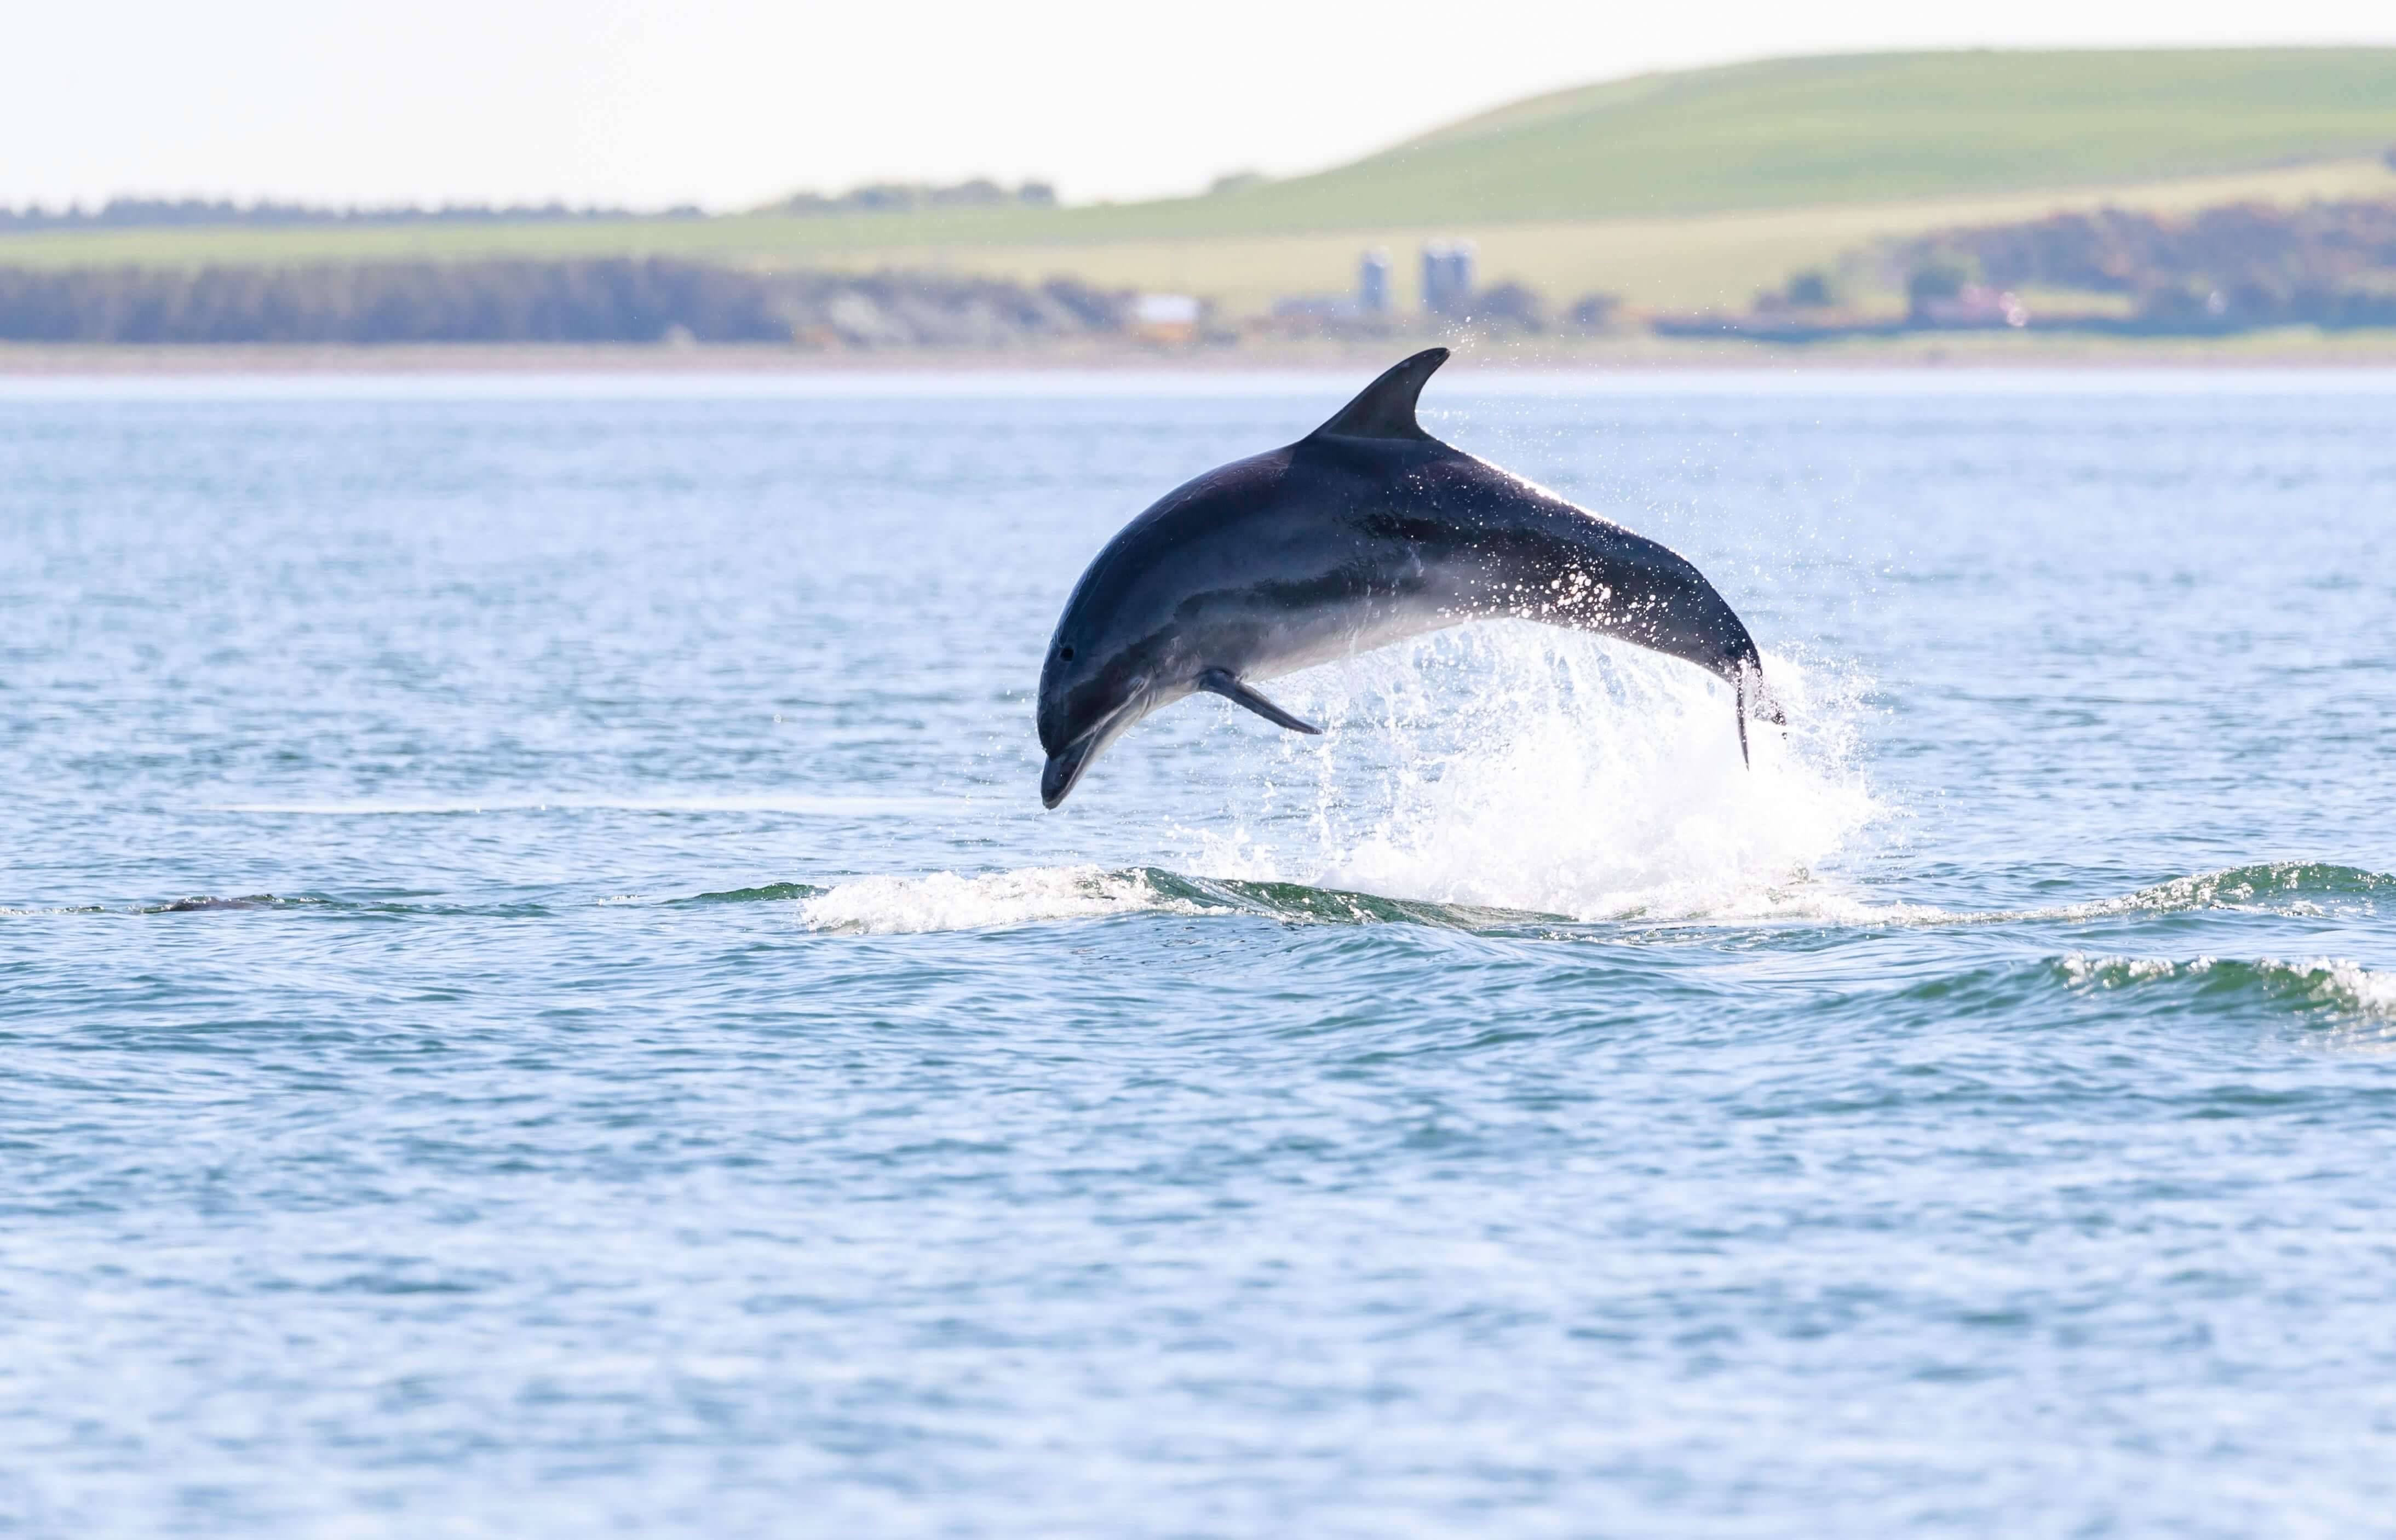 A wild bottlenose dolphin in their natural environment in Moray Firth.